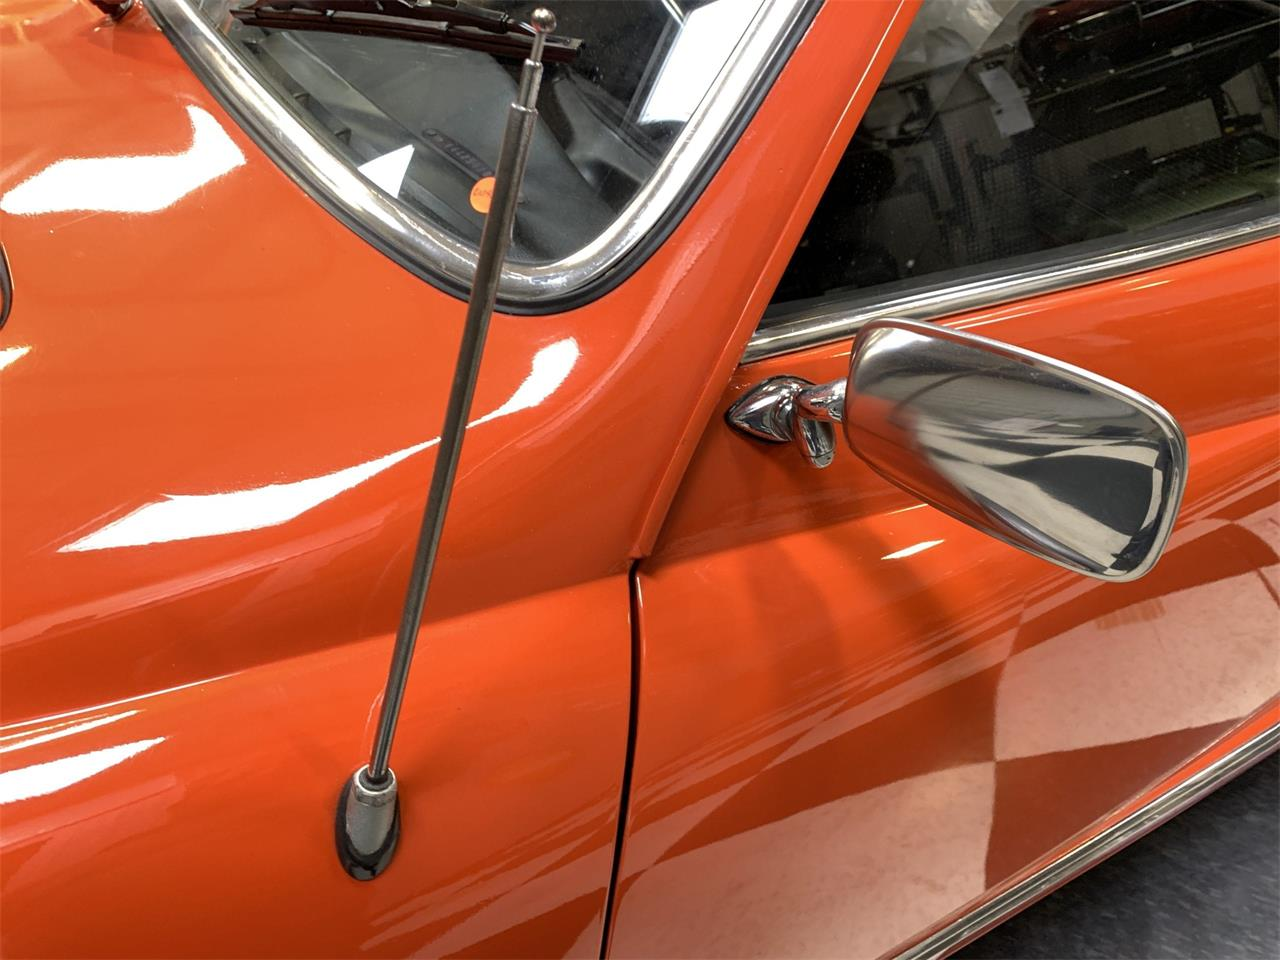 1974 Volkswagen Karmann Ghia for sale in Pittsburgh, PA – photo 68